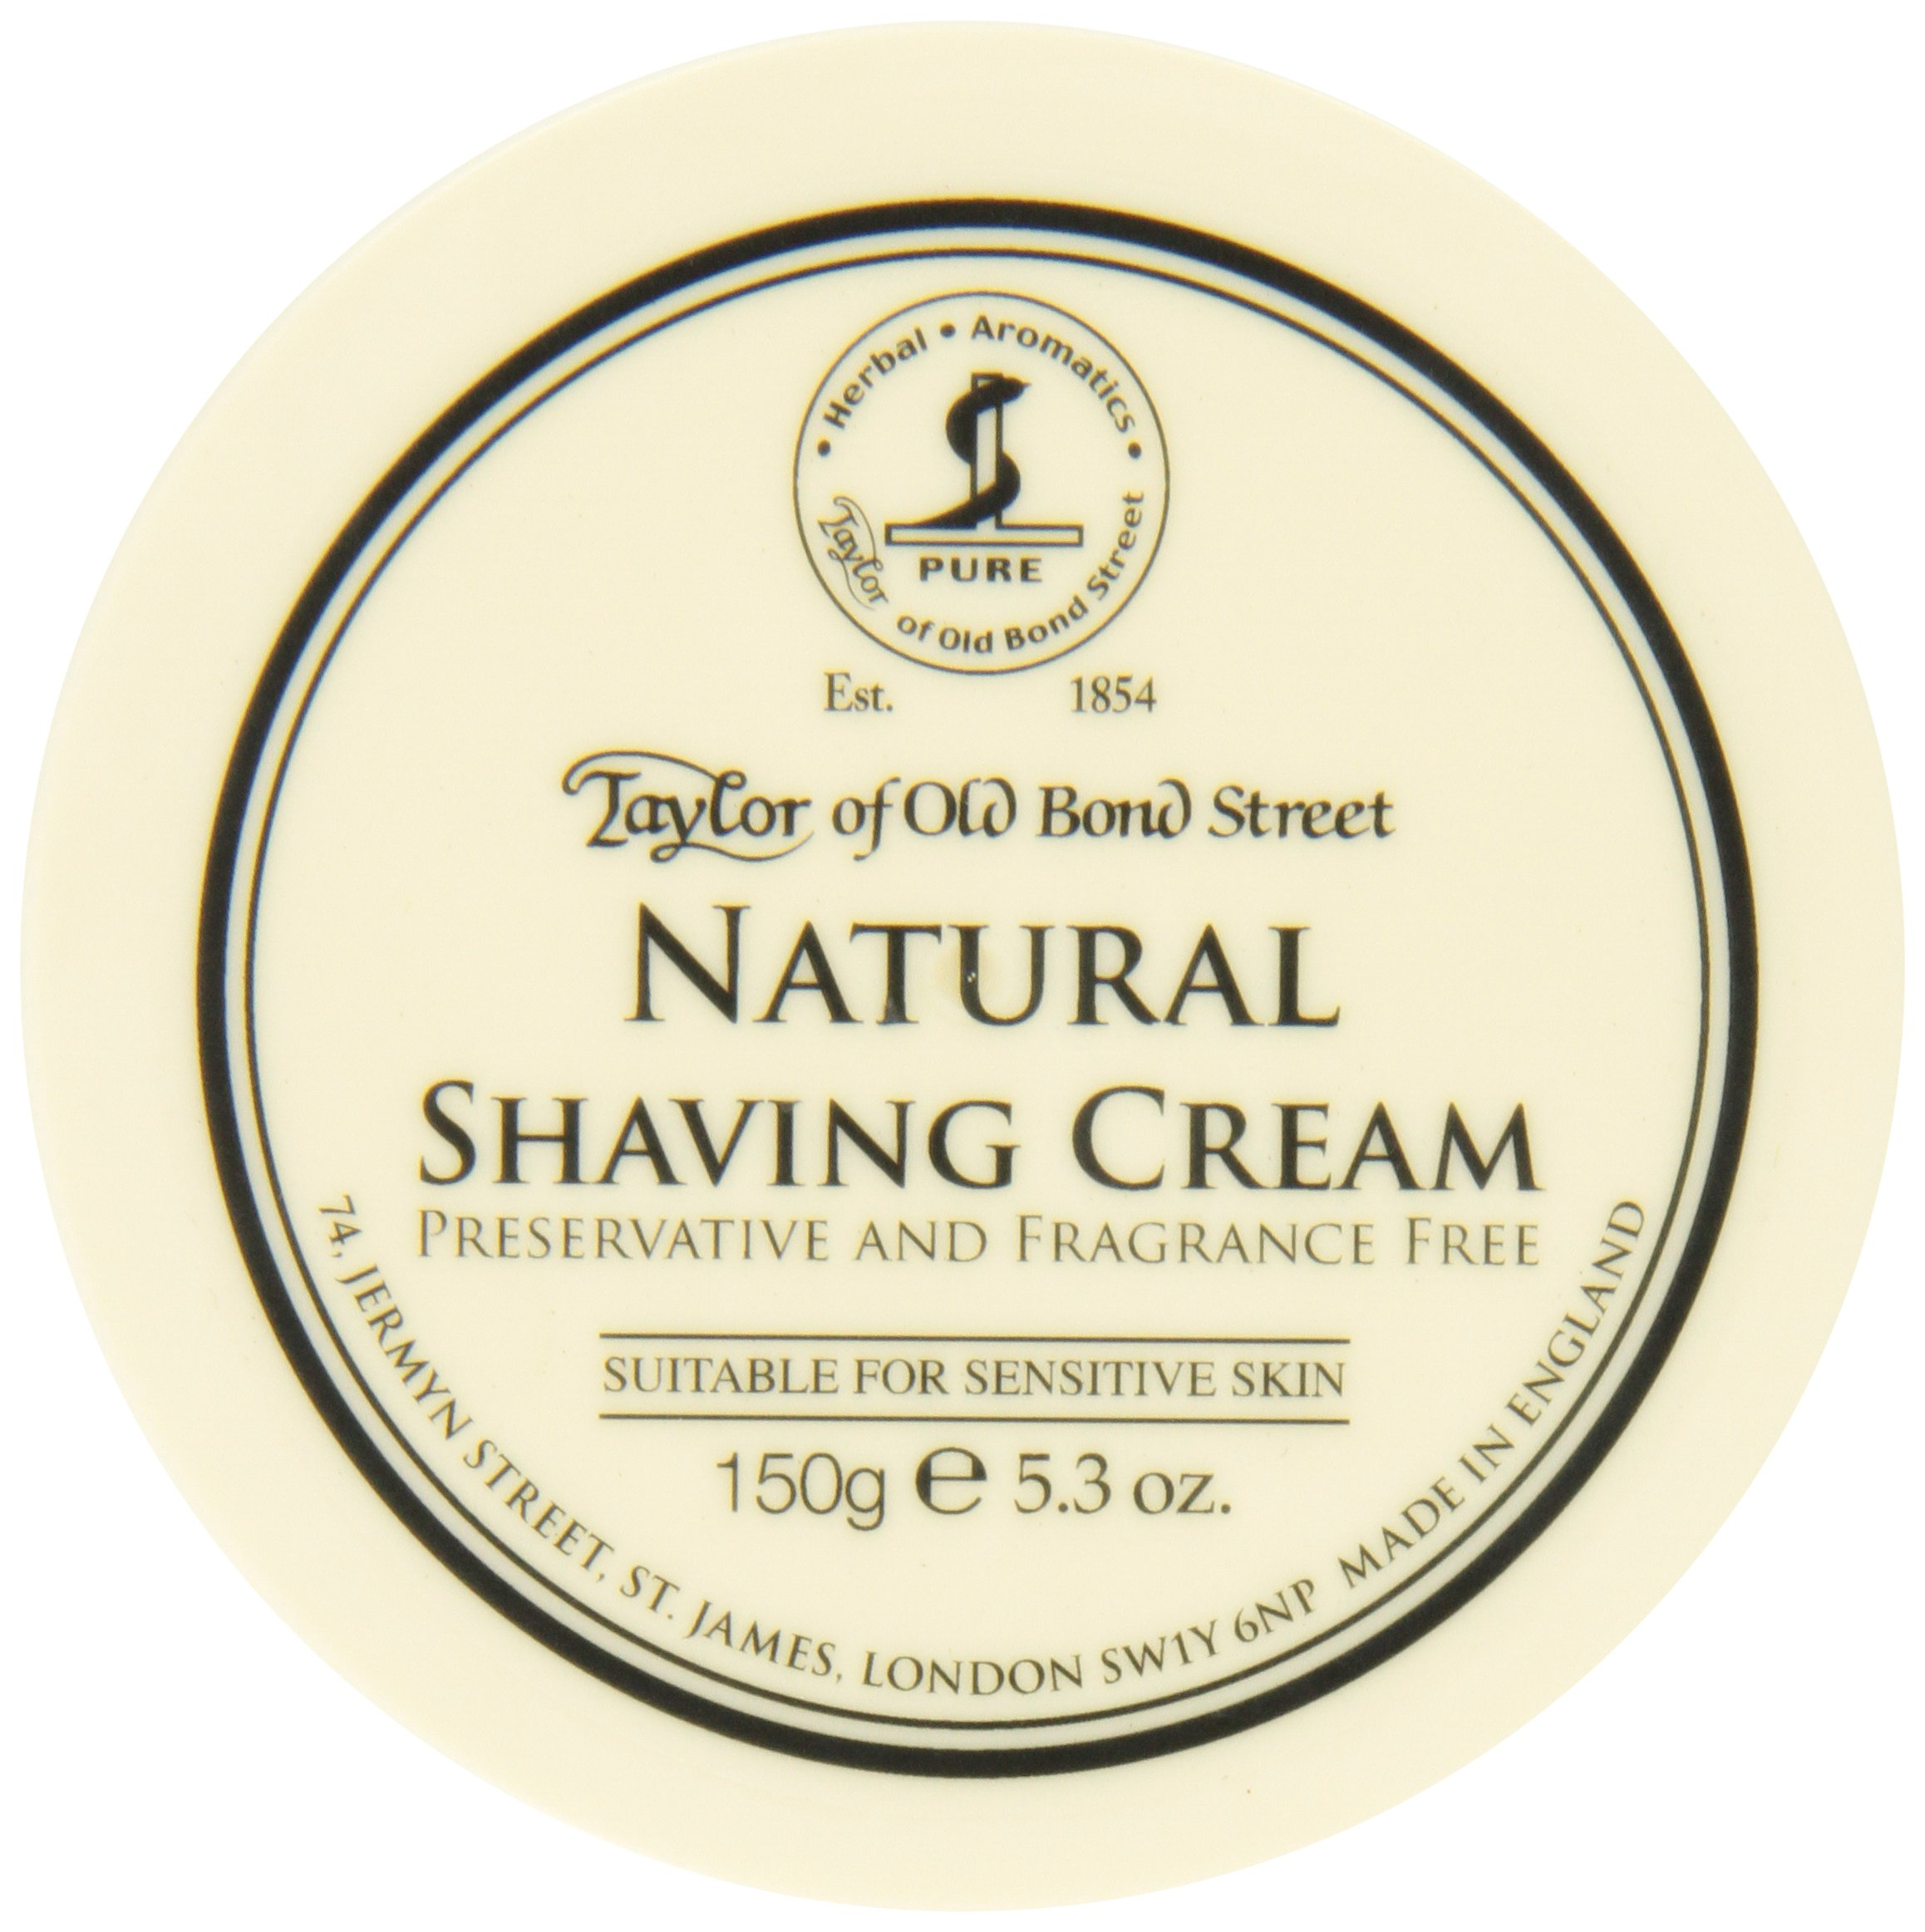 Taylor of Old Bond Street Natural Shaving Cream Bowl, 5.3 Ounce